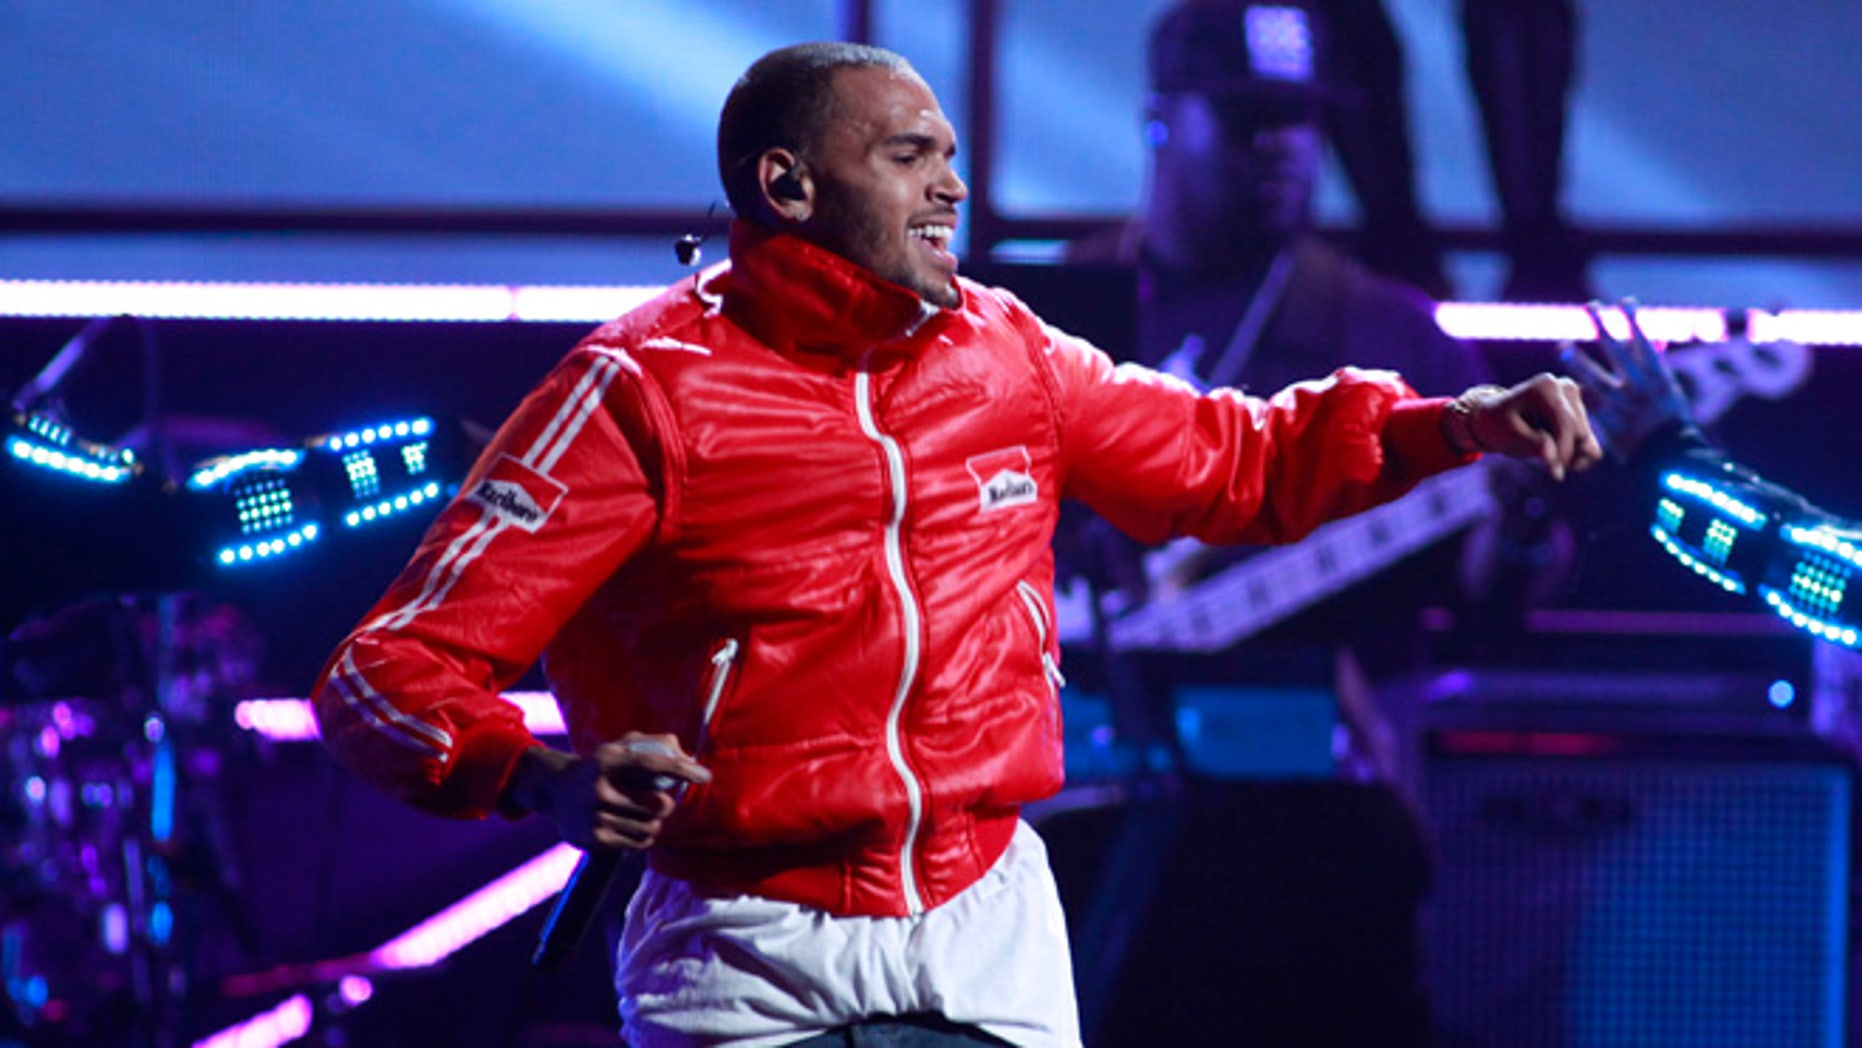 Sept. 20, 2013: Singer Chris Brown performs during the iHeartRadio Music Festival at the MGM Grand Garden Arena in Las Vegas, Nevada.